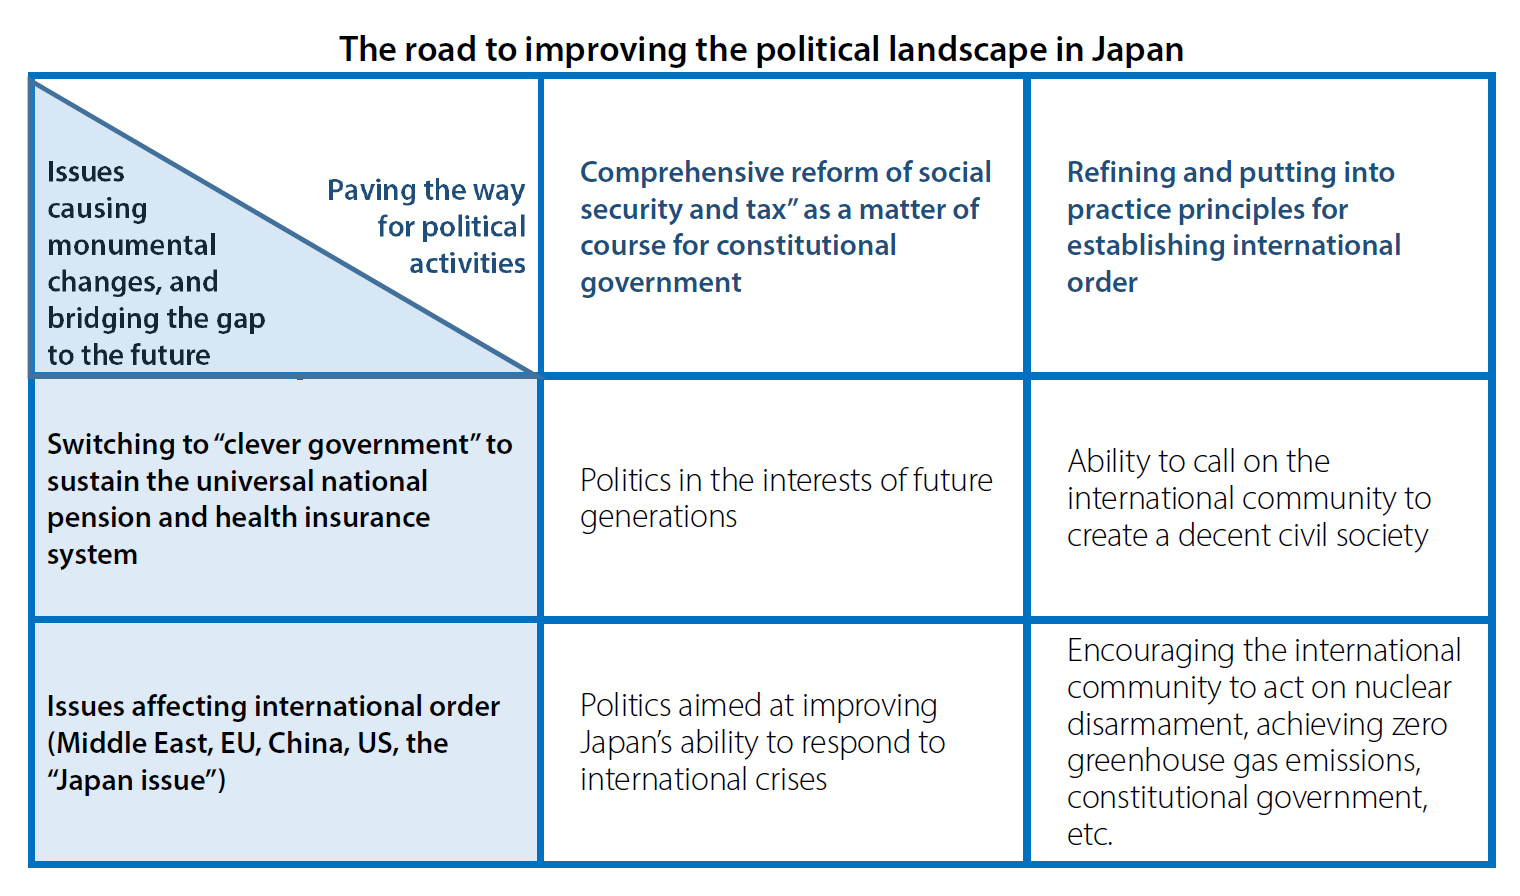 interpreting the upper house elections two concerns about that in mind what are the medium to long term implications of maintaining the status quo as an option for ese politics